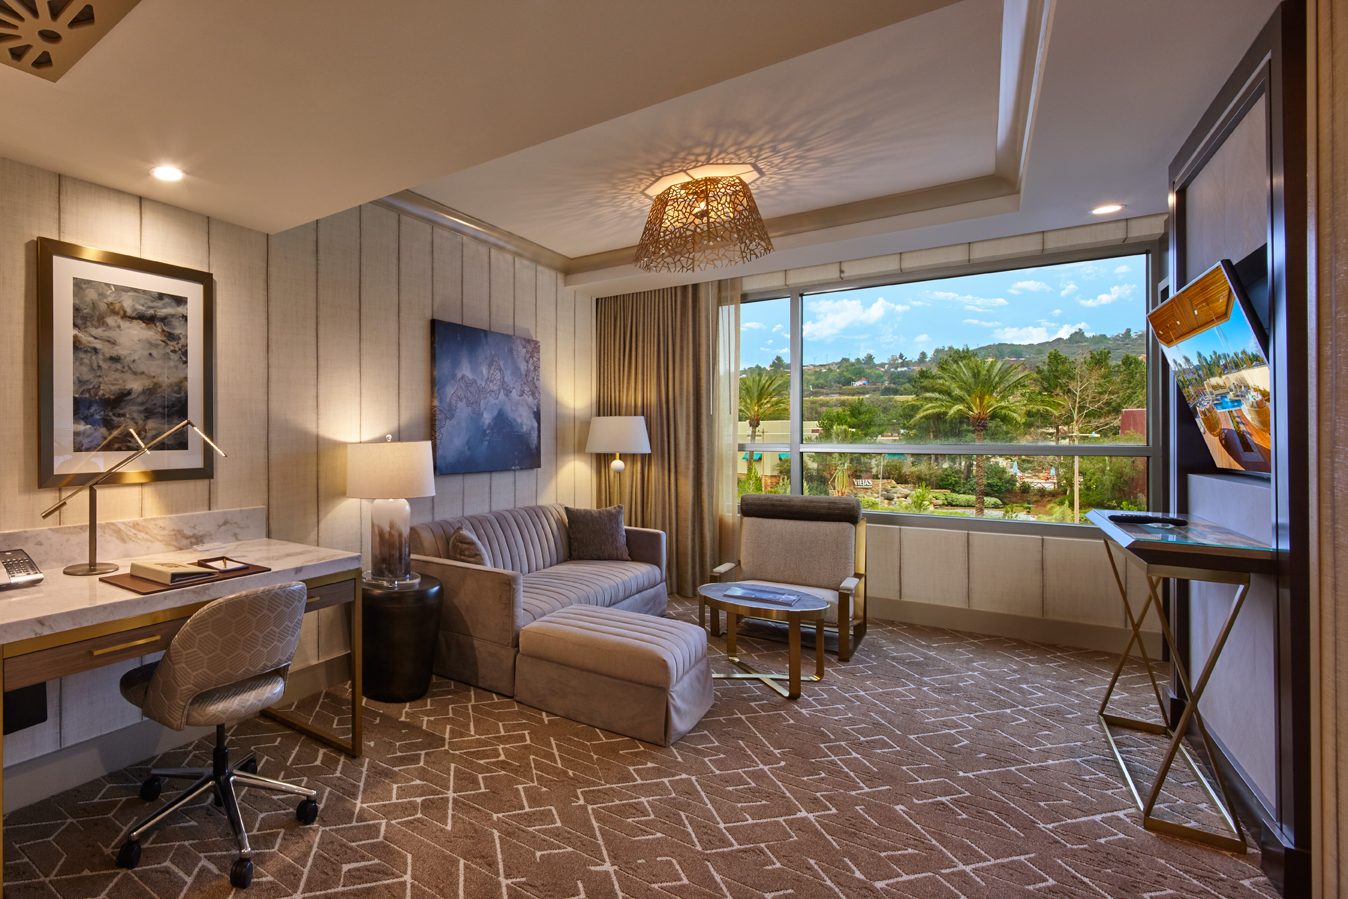 Luxury San Diego Hotel  Signature Suite  King  Viejas Casino  Resort